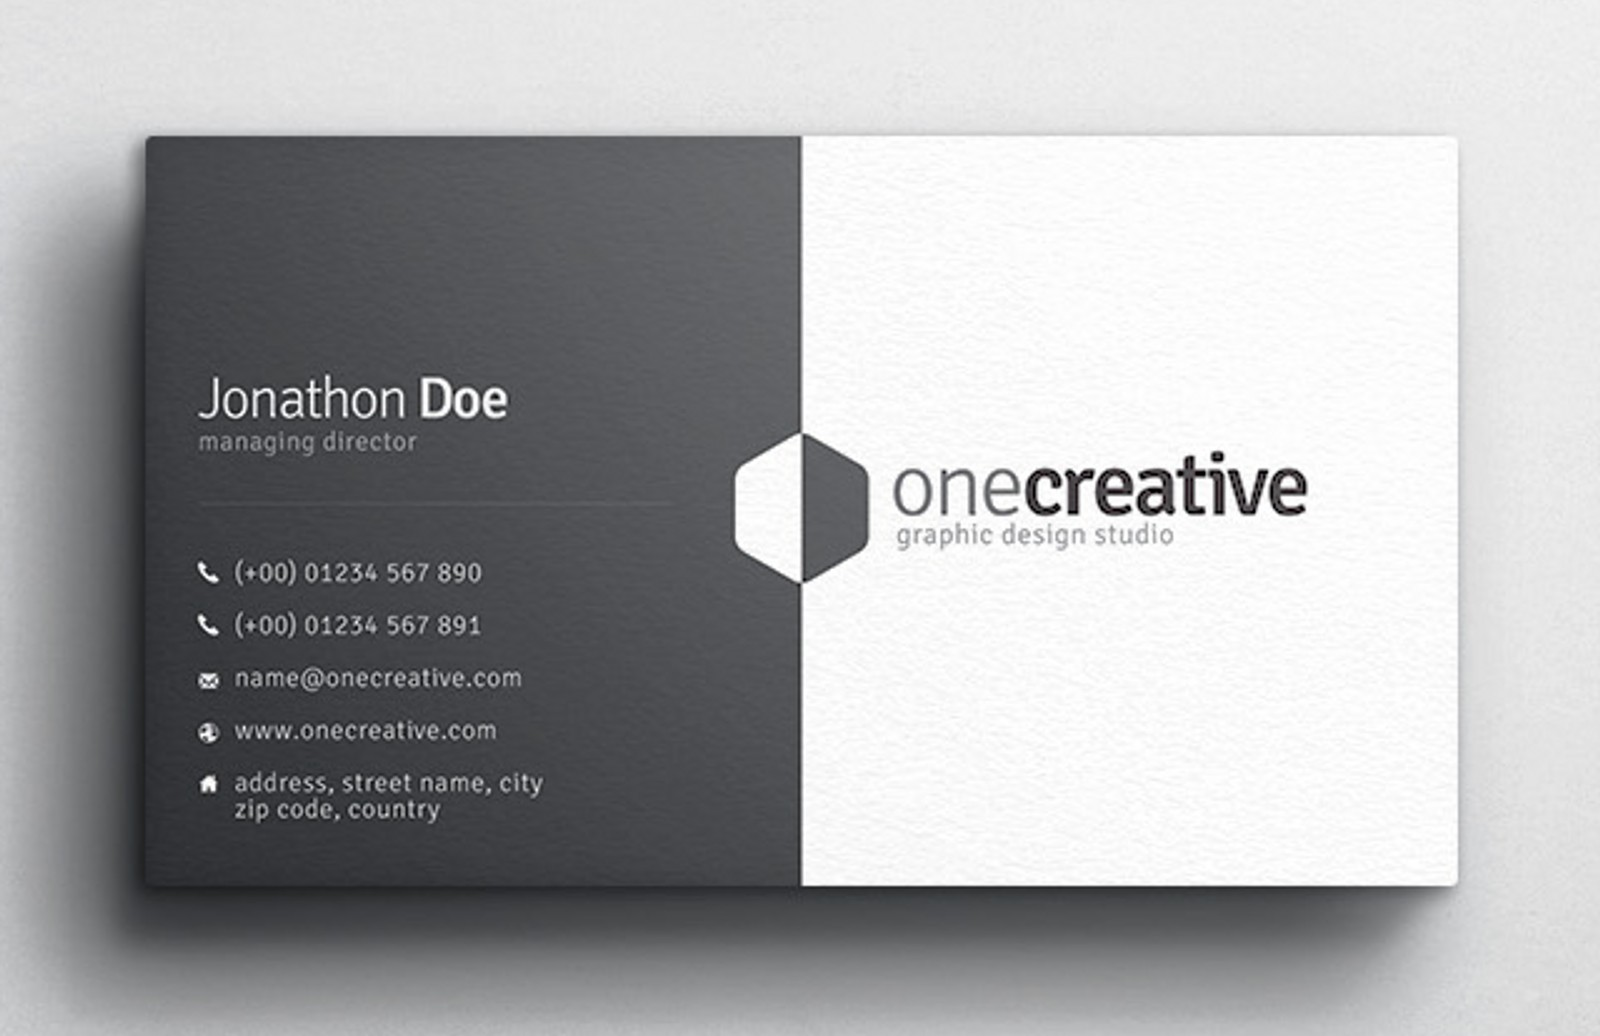 Duo business card design medialoot duo business card design flashek Images